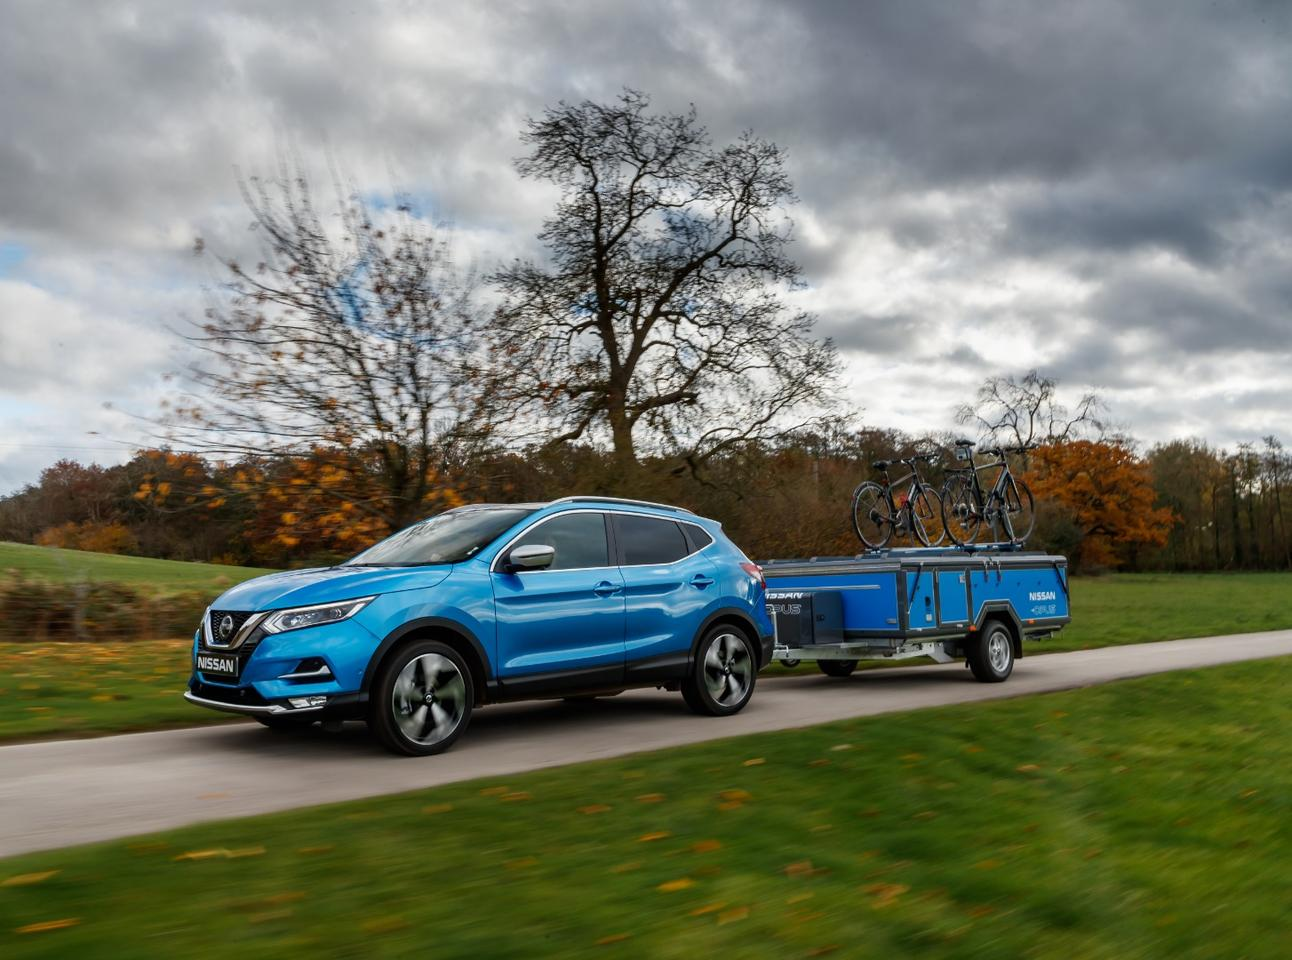 Nissan tows the Nissan x Opus trailer with a Qashqai crossover